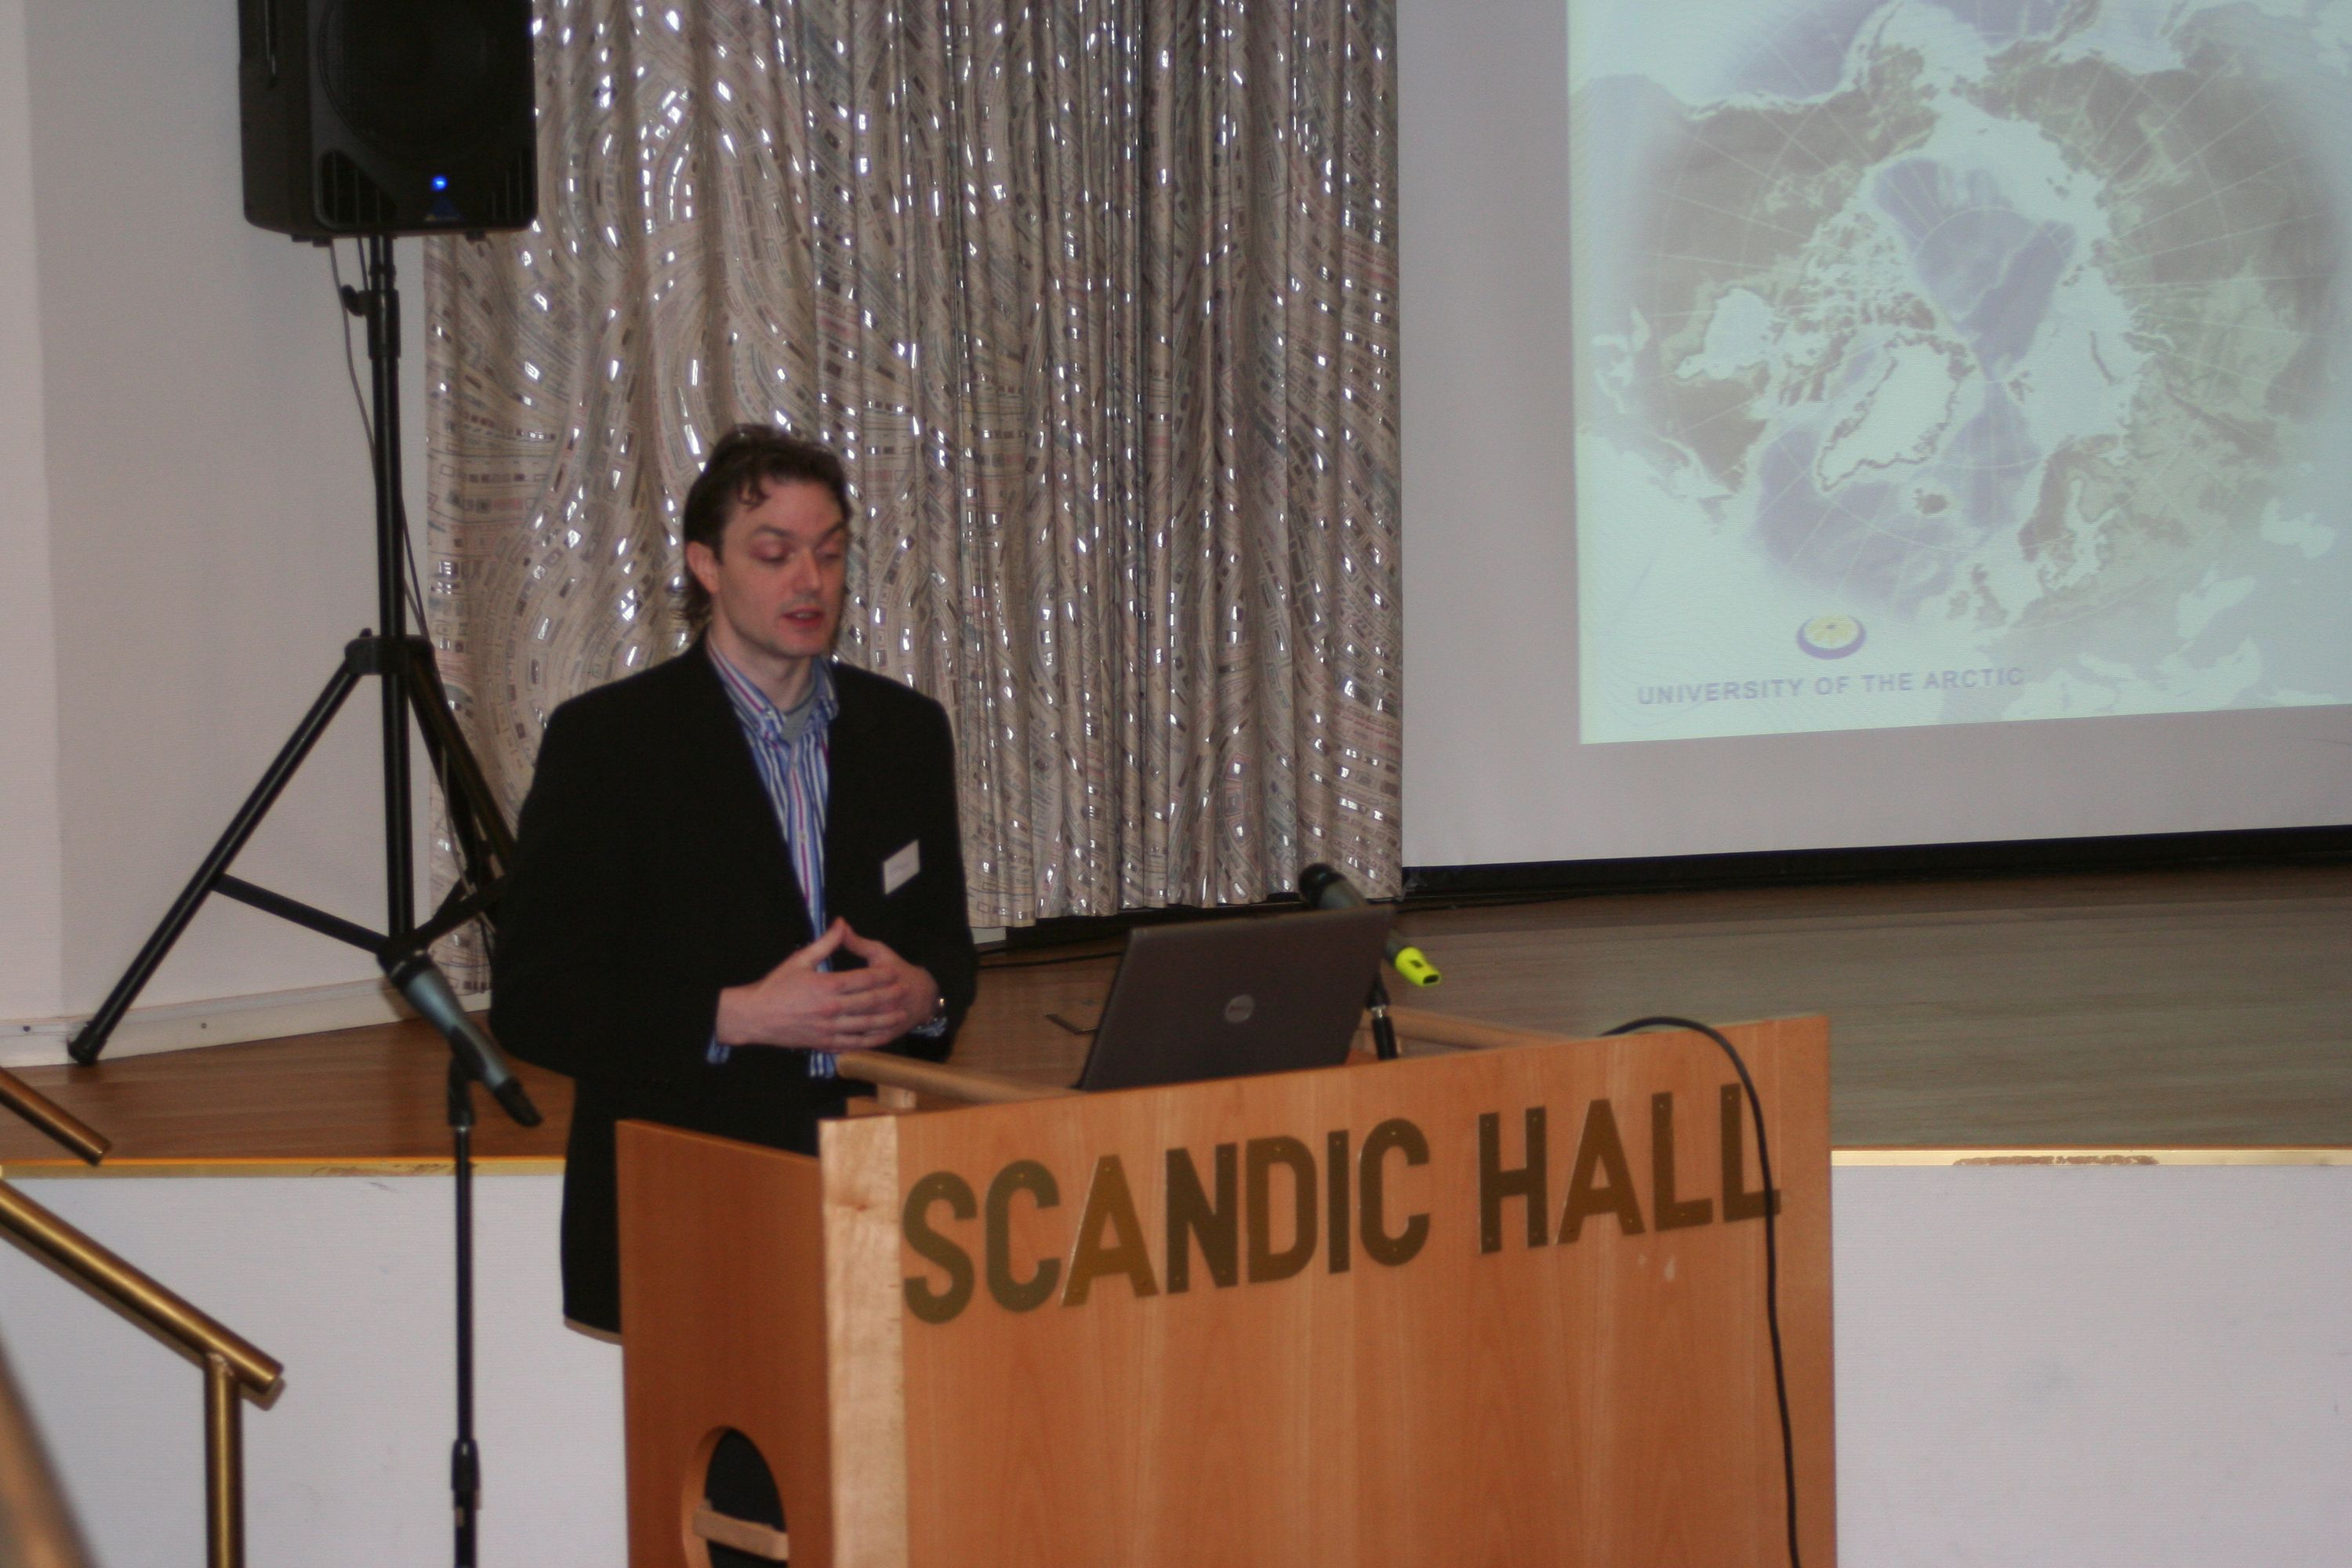 Scott Forrest launches UArctic Atlas website in Tromso